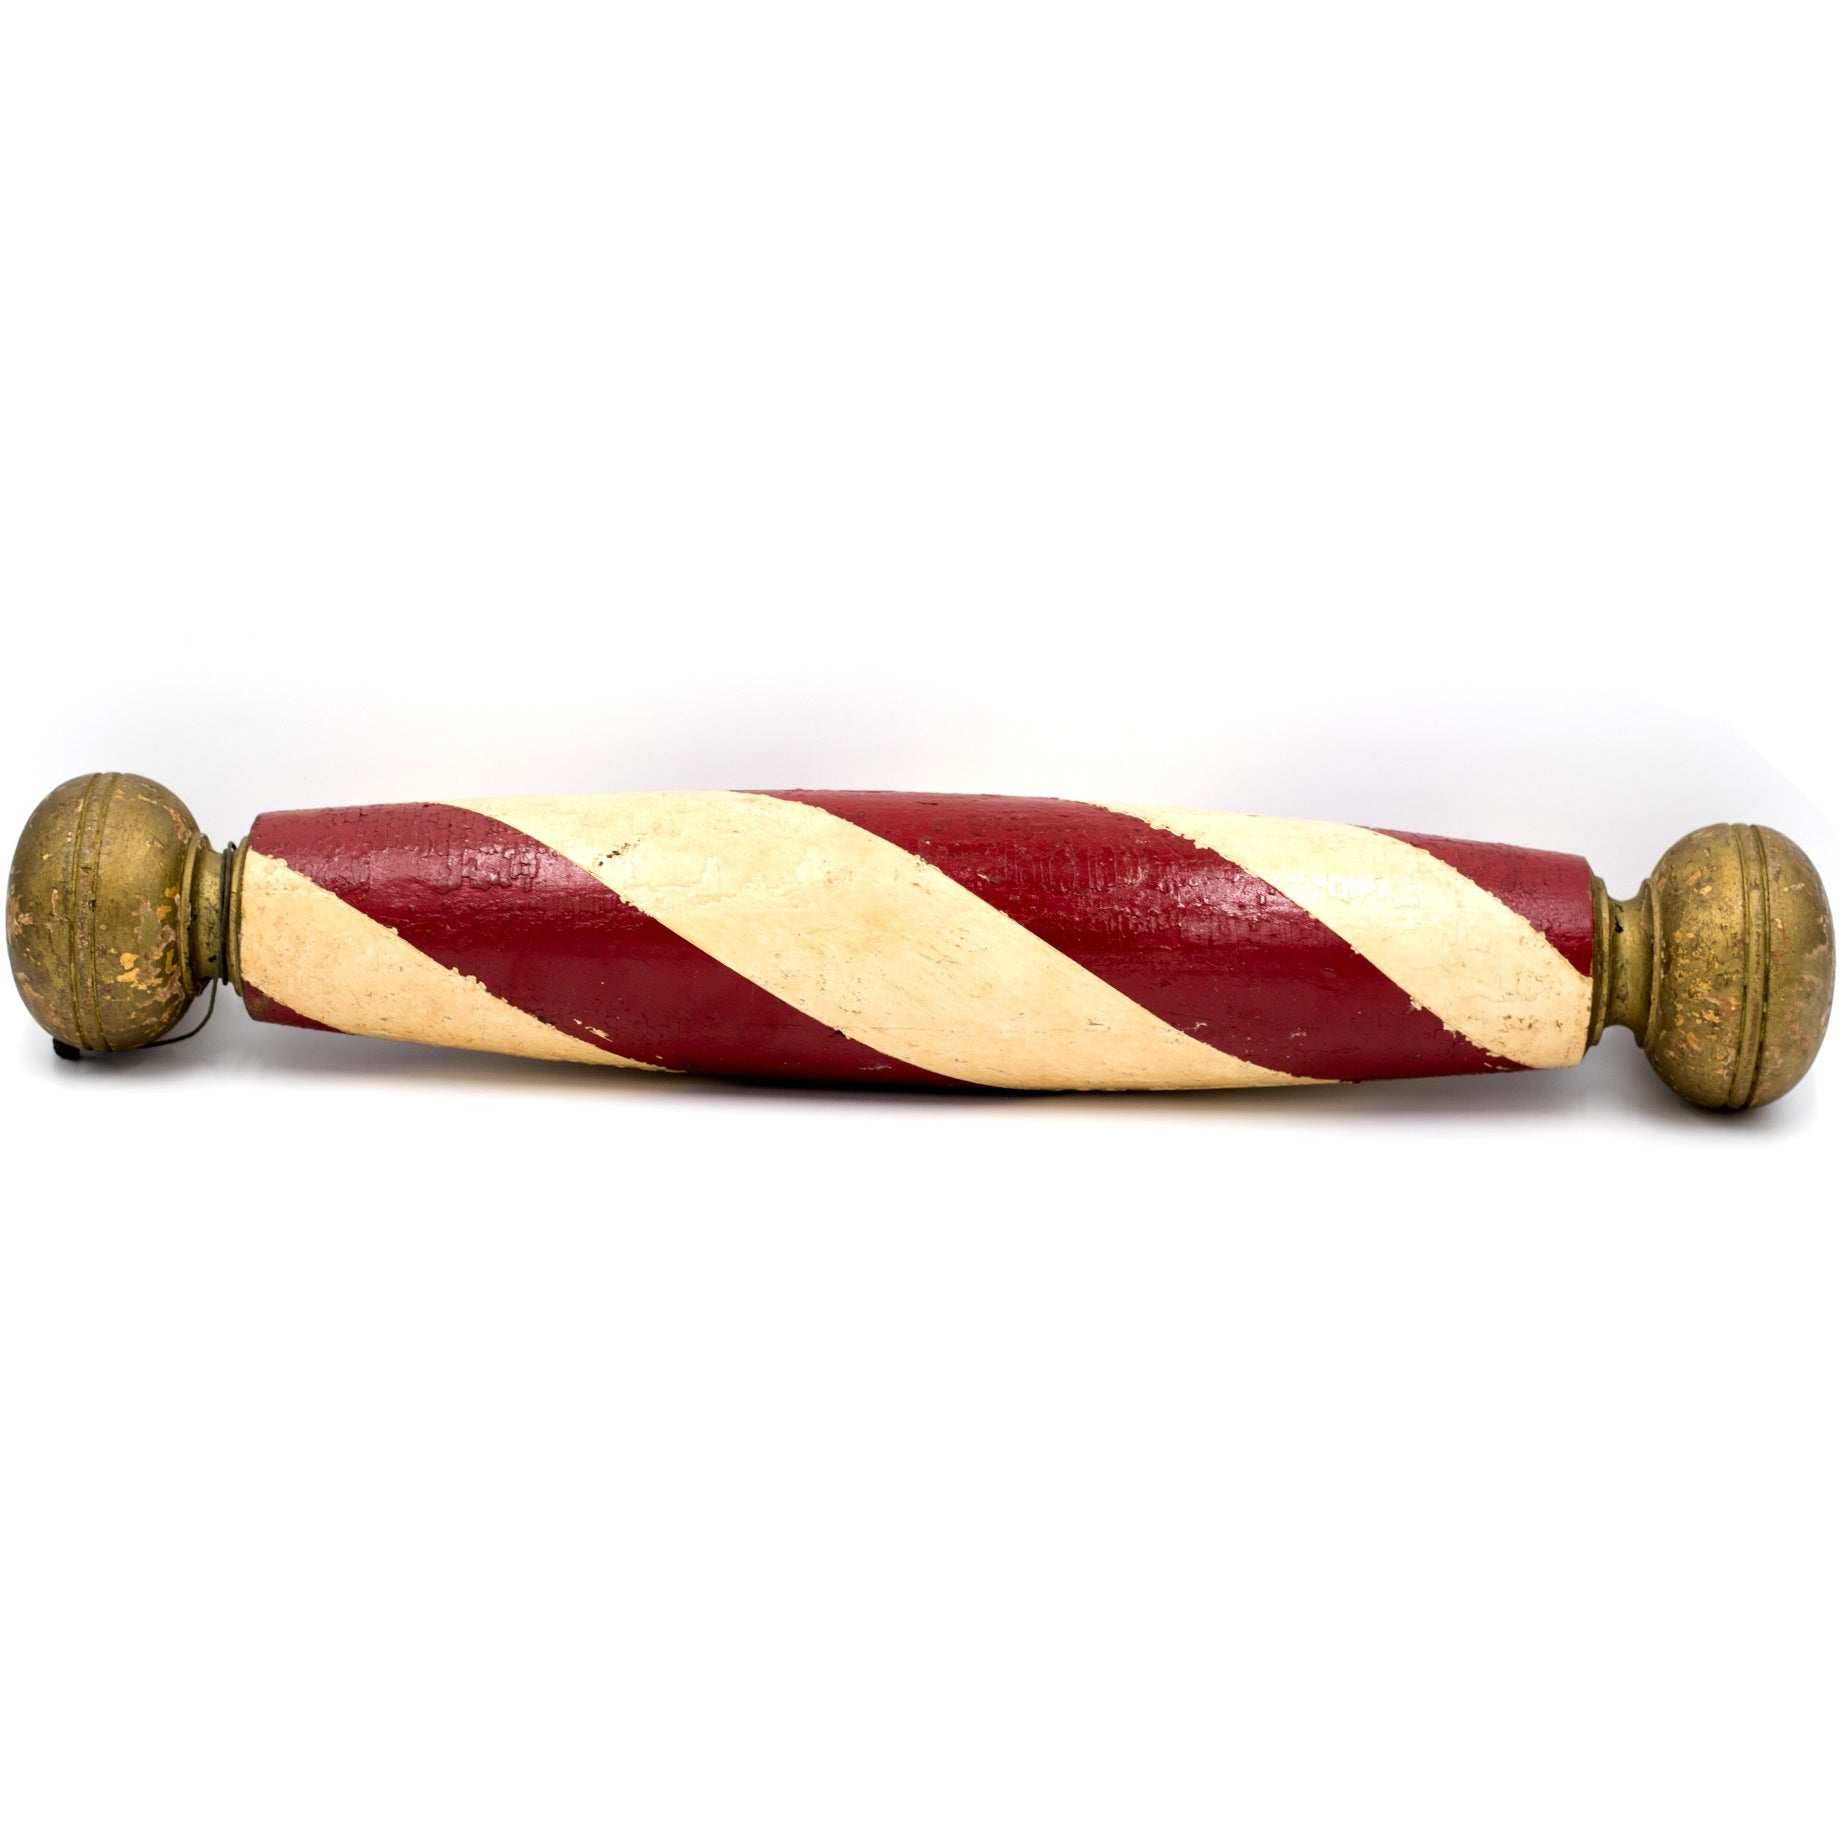 Hand-painted Barbershop Pole